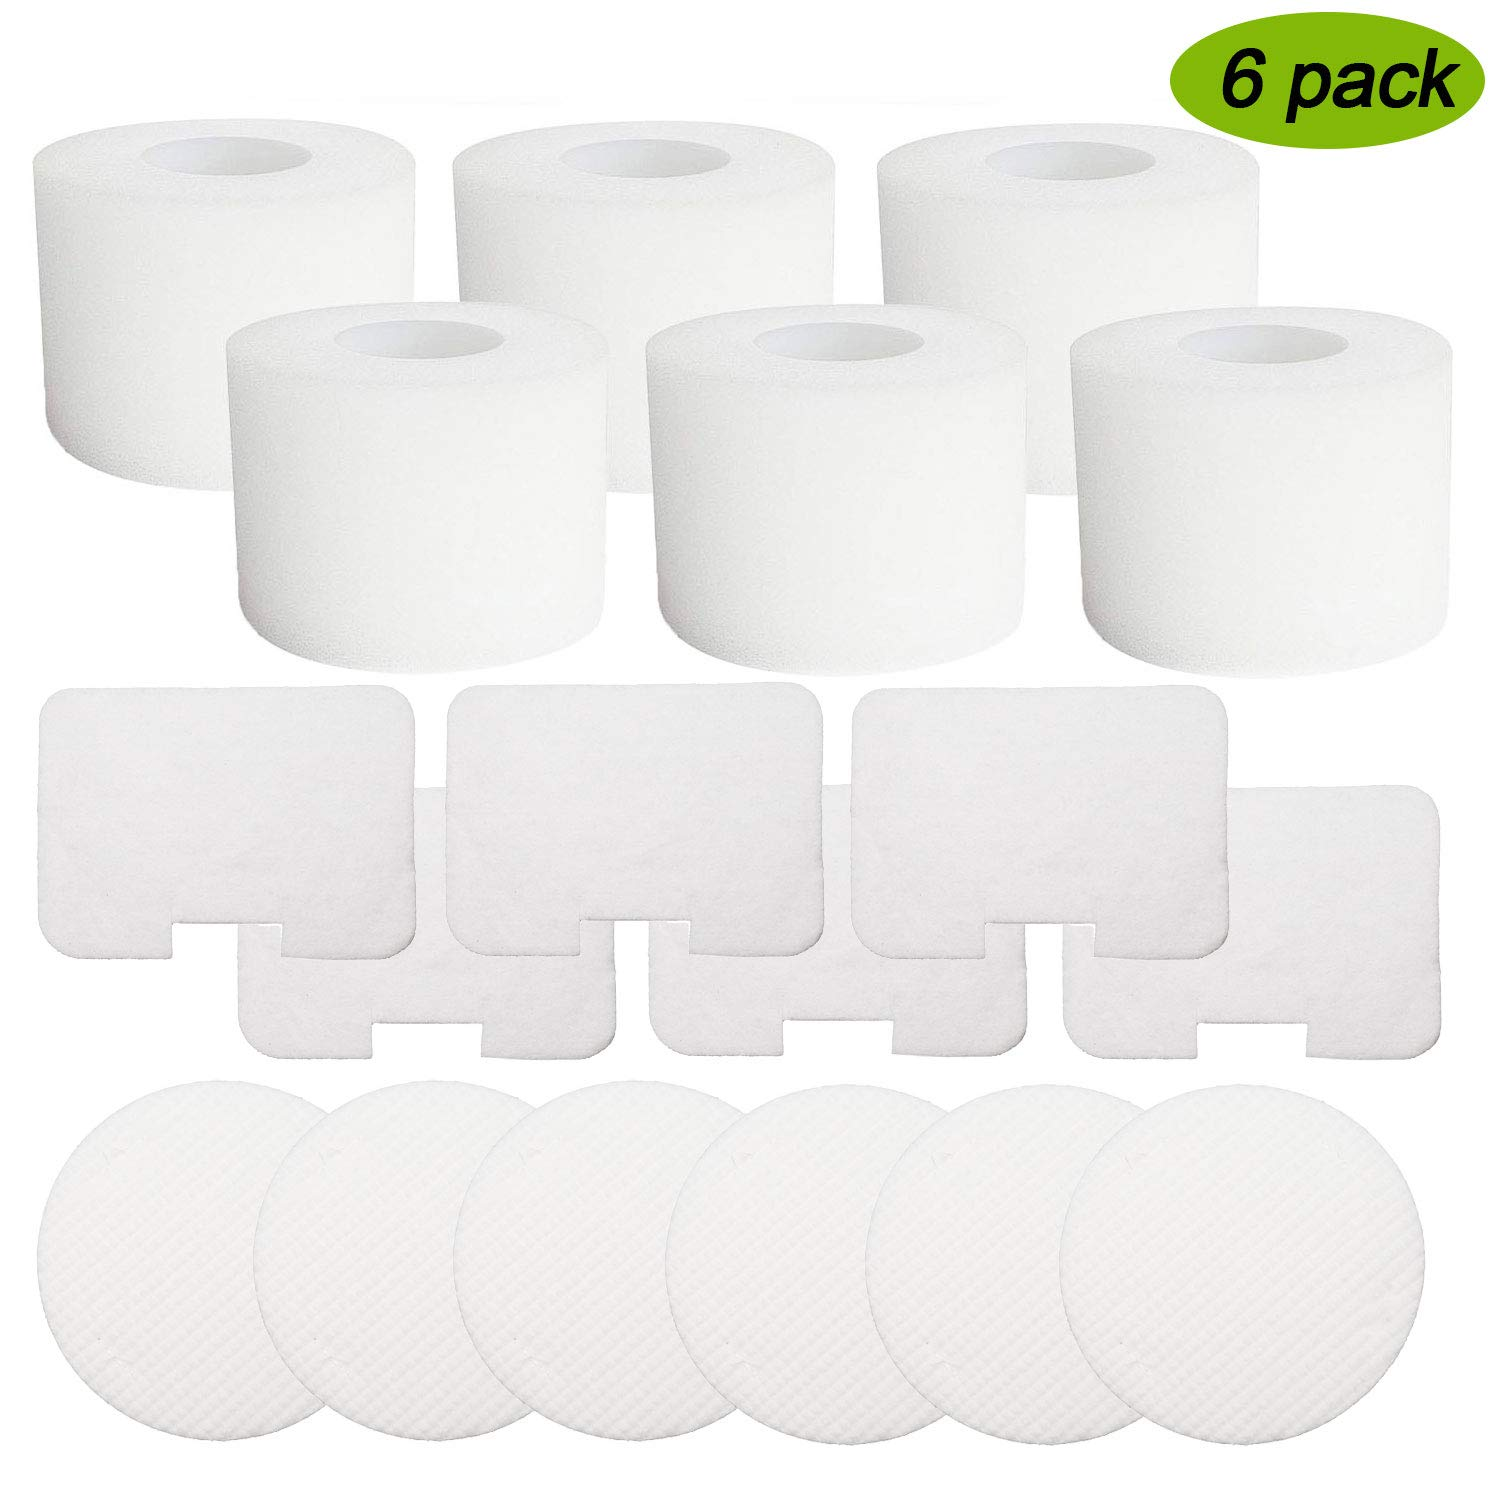 Froliclean 6 Pack Vacuum Filters Replacement for Shark Navigator Deluxe Upright Models NV42, NV44, NV46, UV402, Replaces Part XFF36